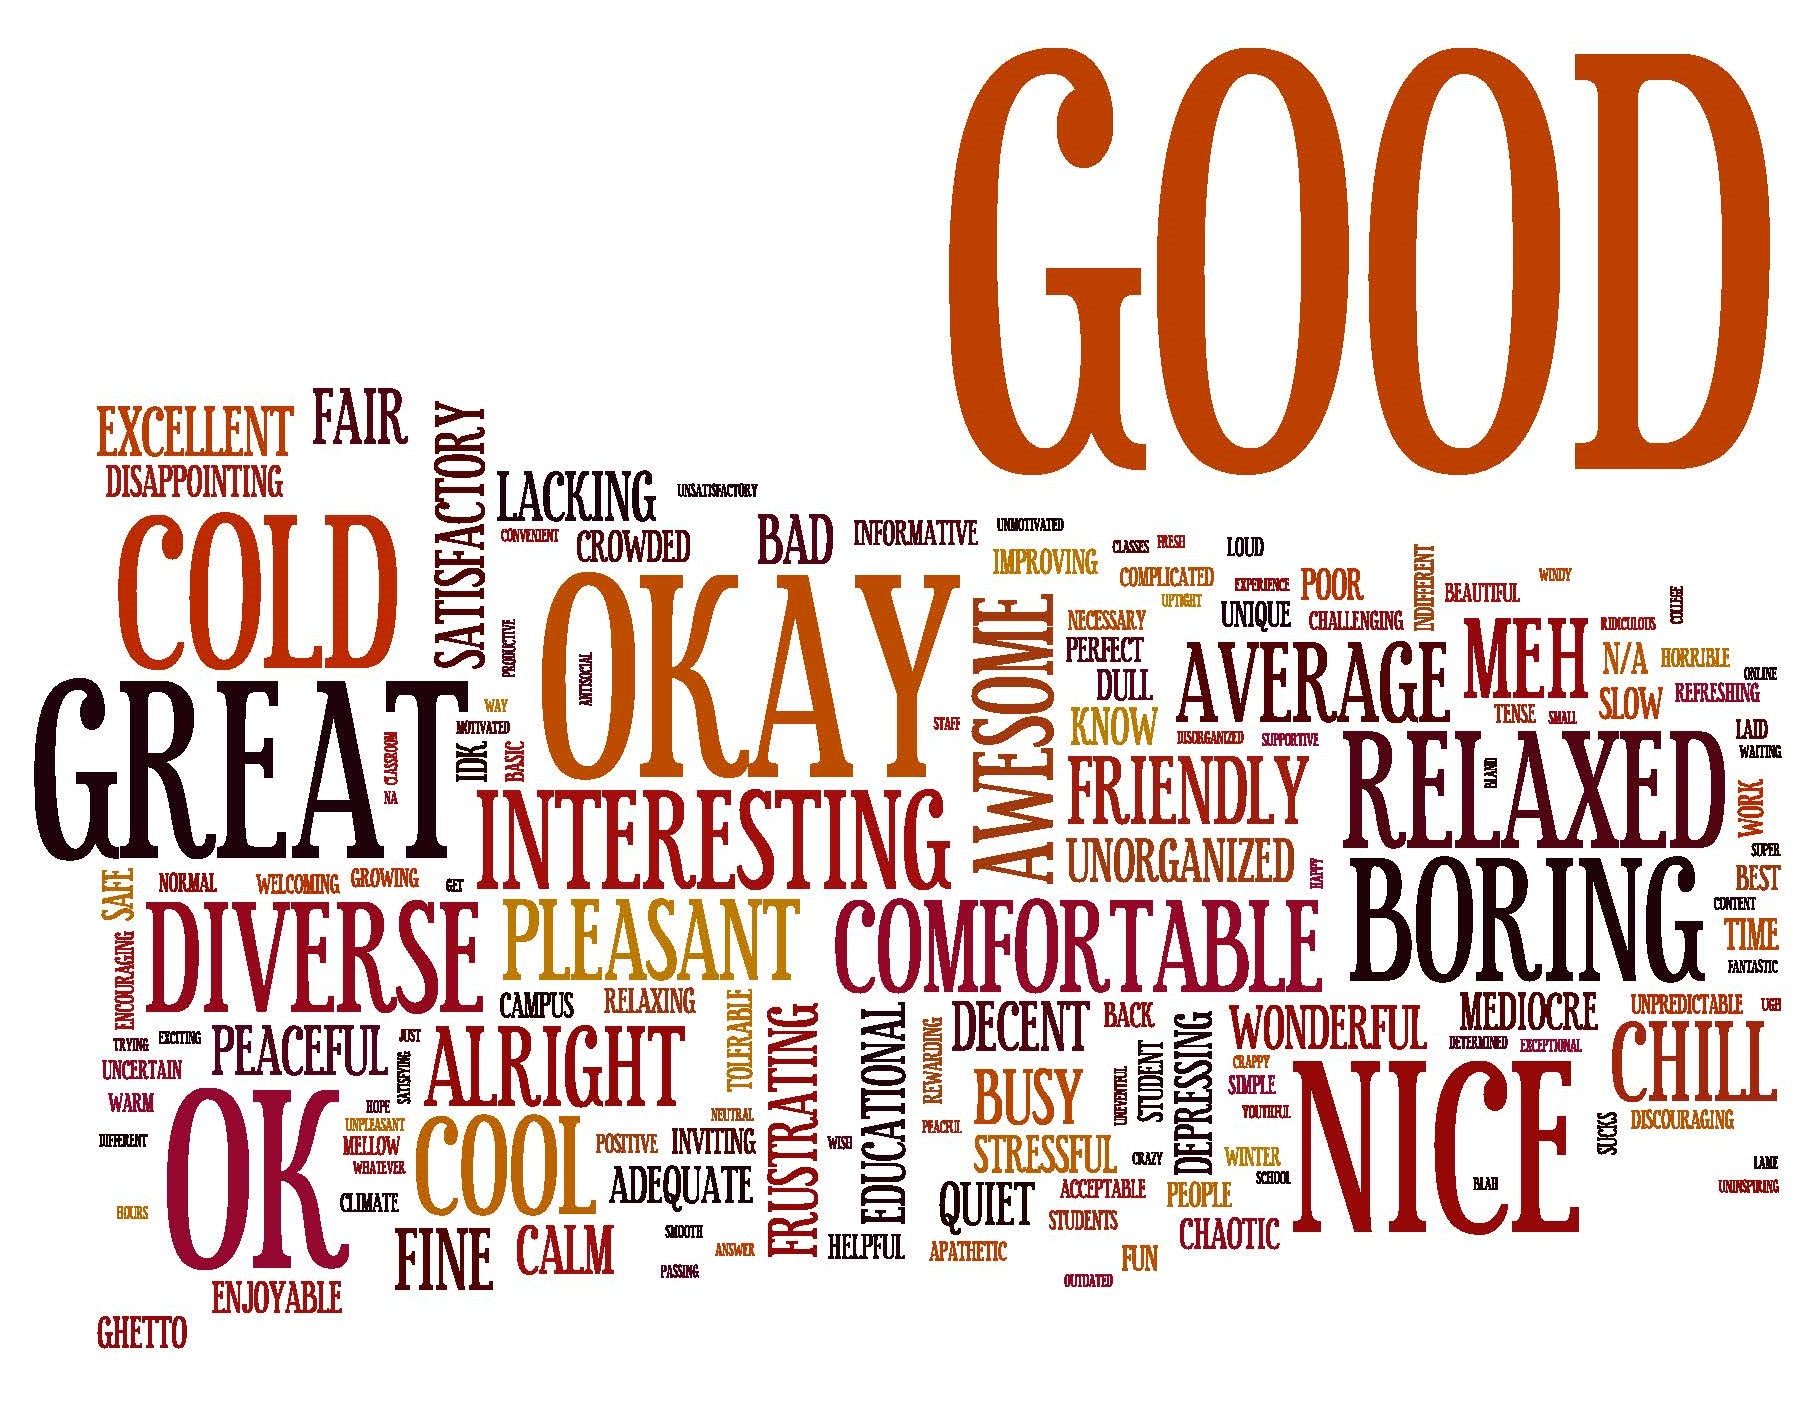 Student perceptions word cloud